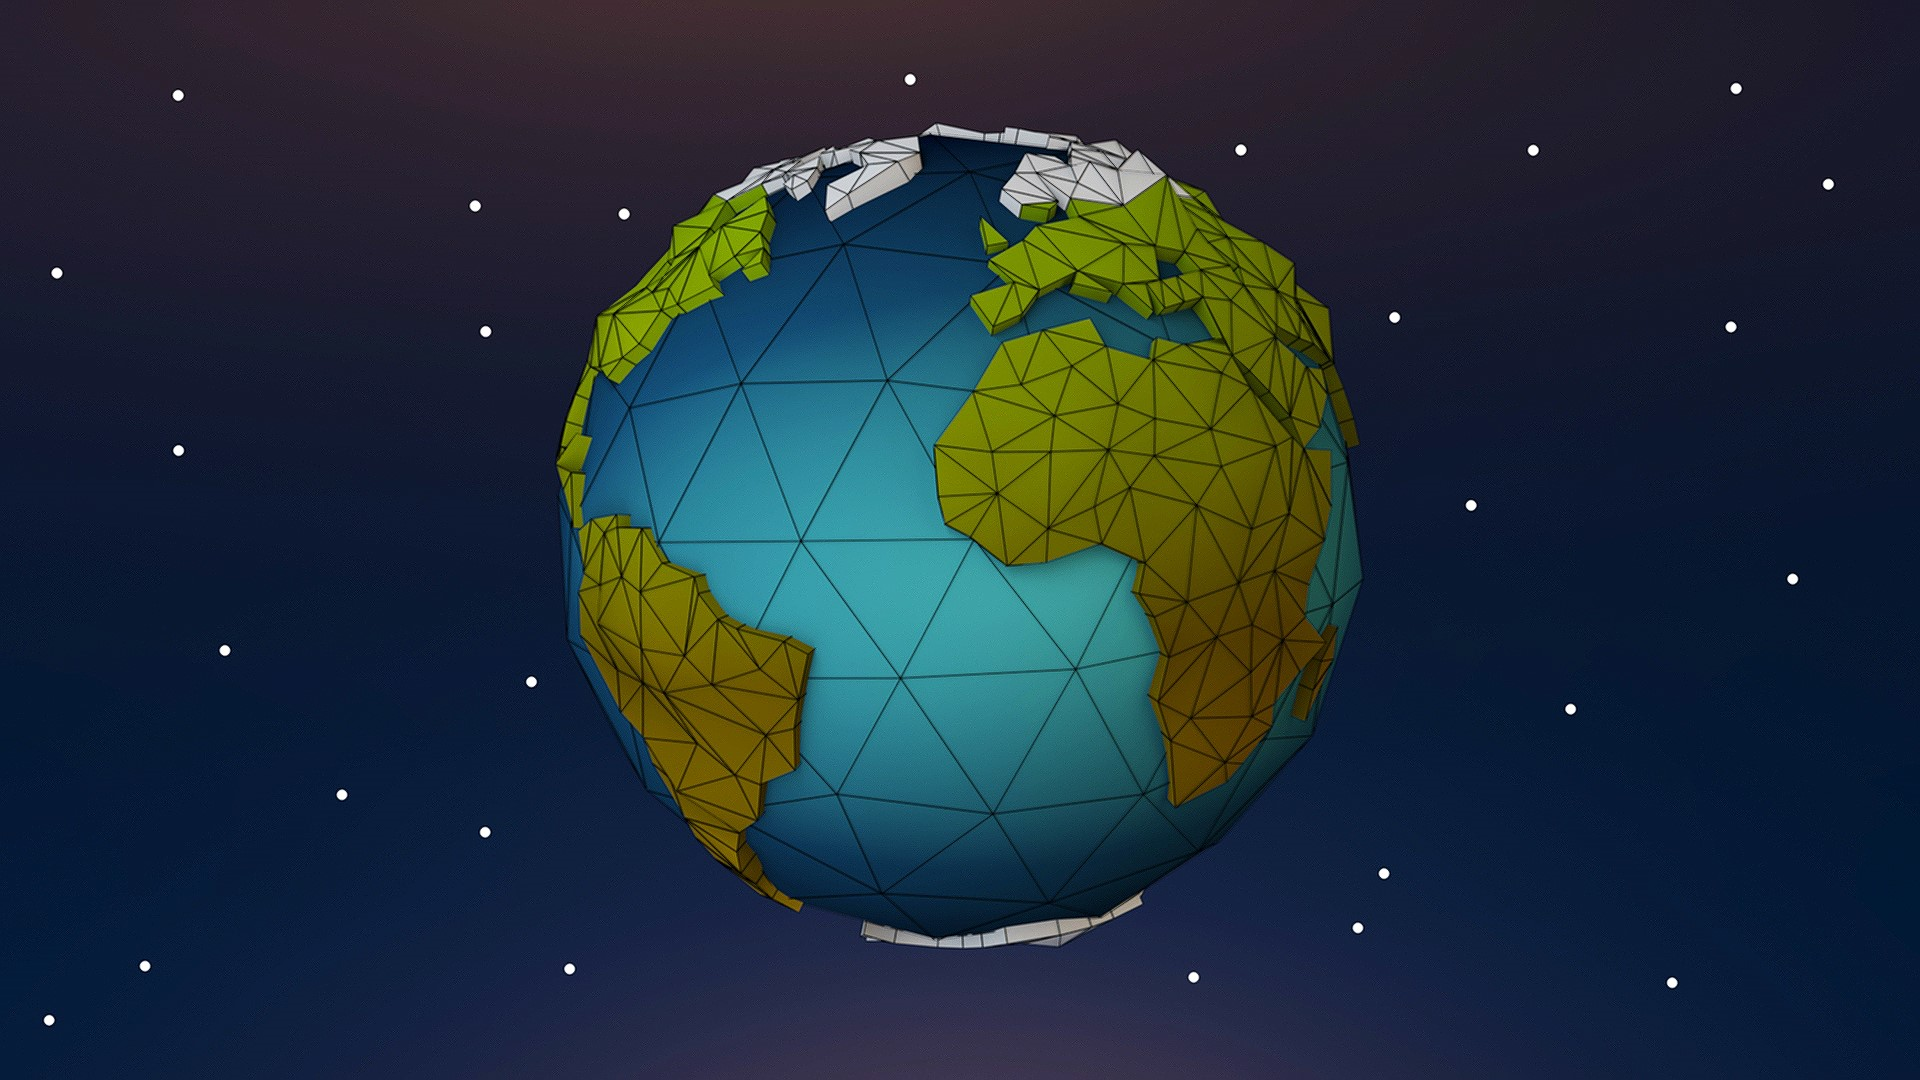 Low Poly 3d Earth By S I S C O 3docean